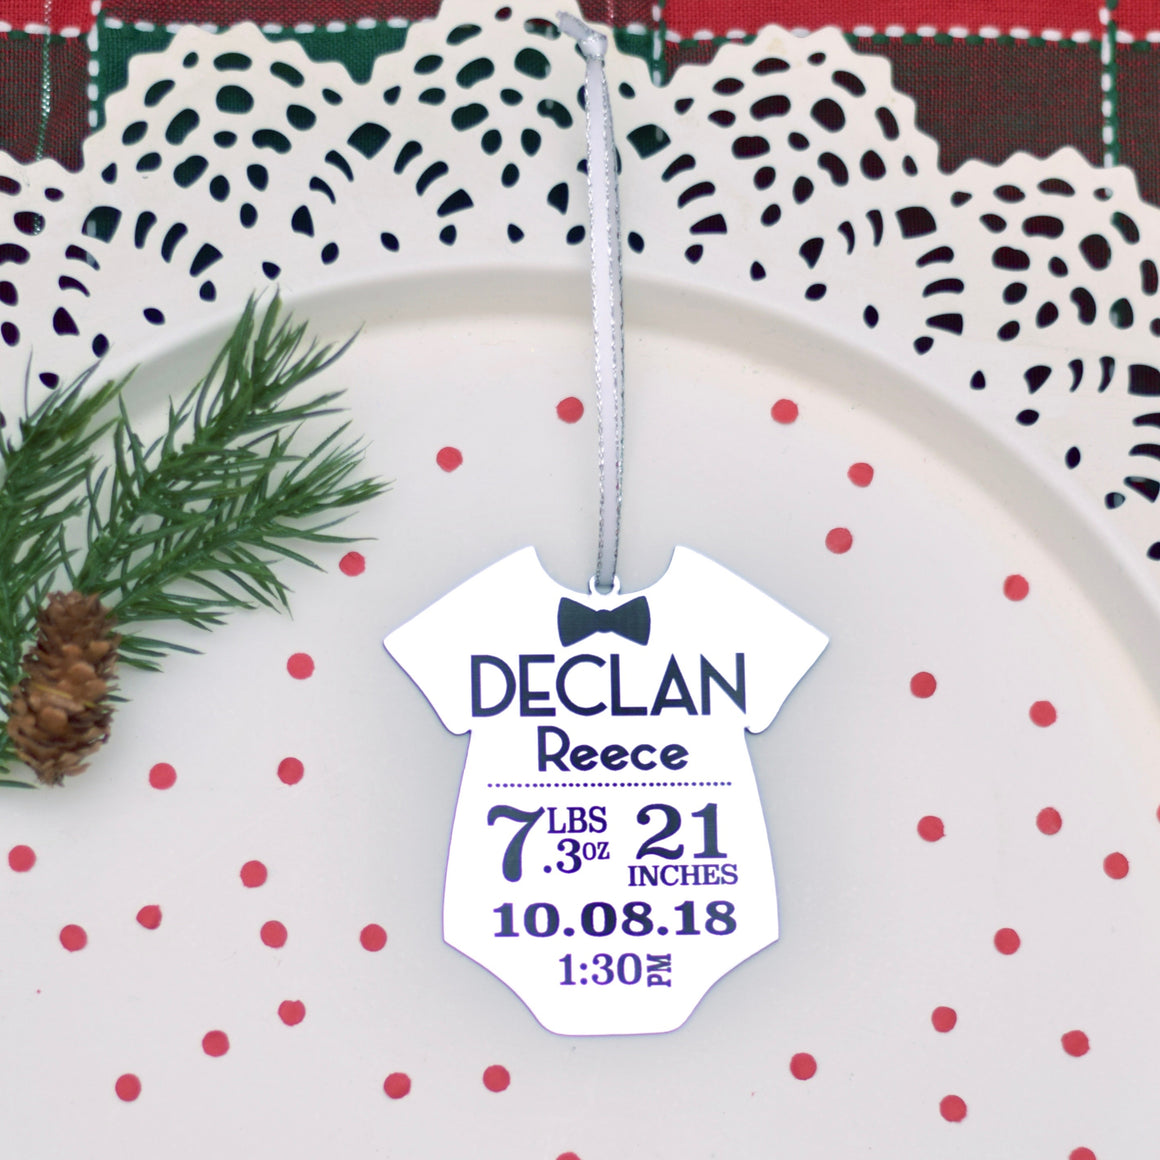 Silver onesie Christmas ornament with Baby stats in black placed onto a white cake plate with some Christmas greenery and red confetti